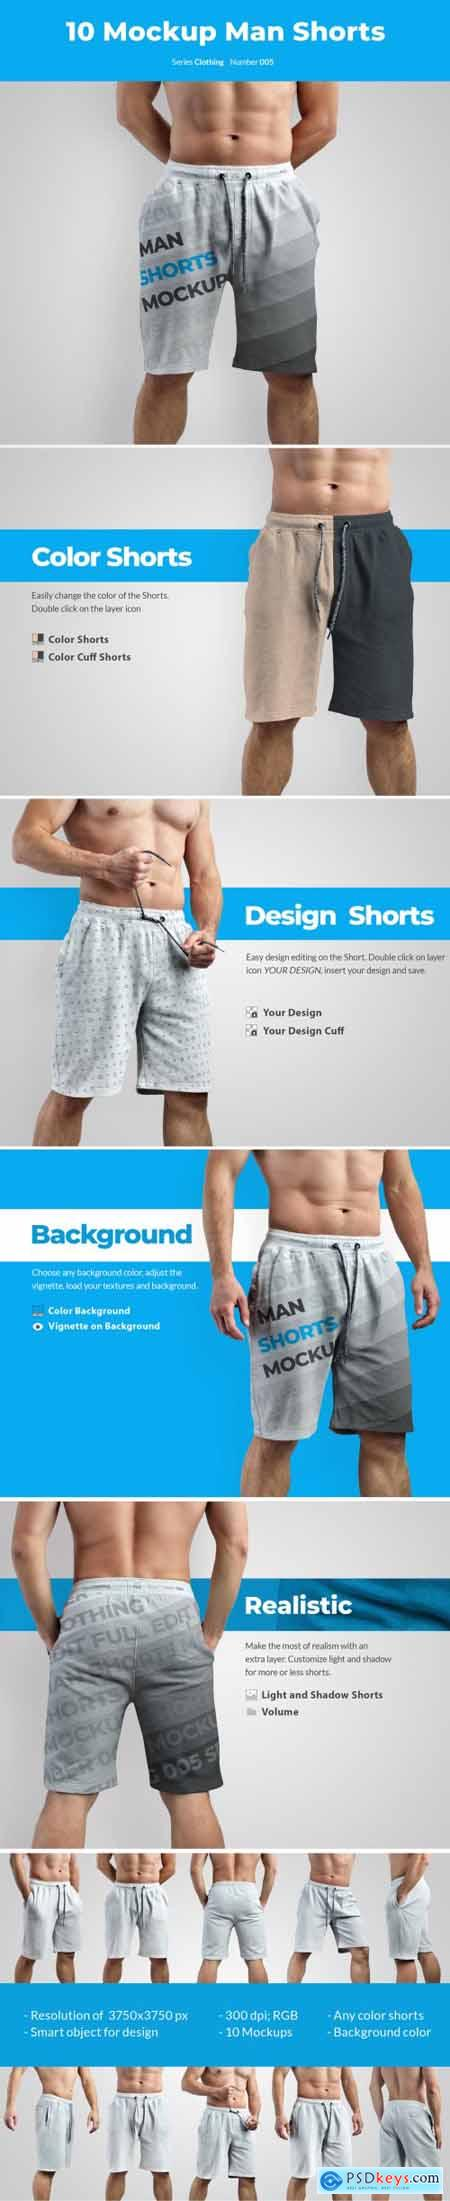 10 Mockups Athletic Shorts Man 53517